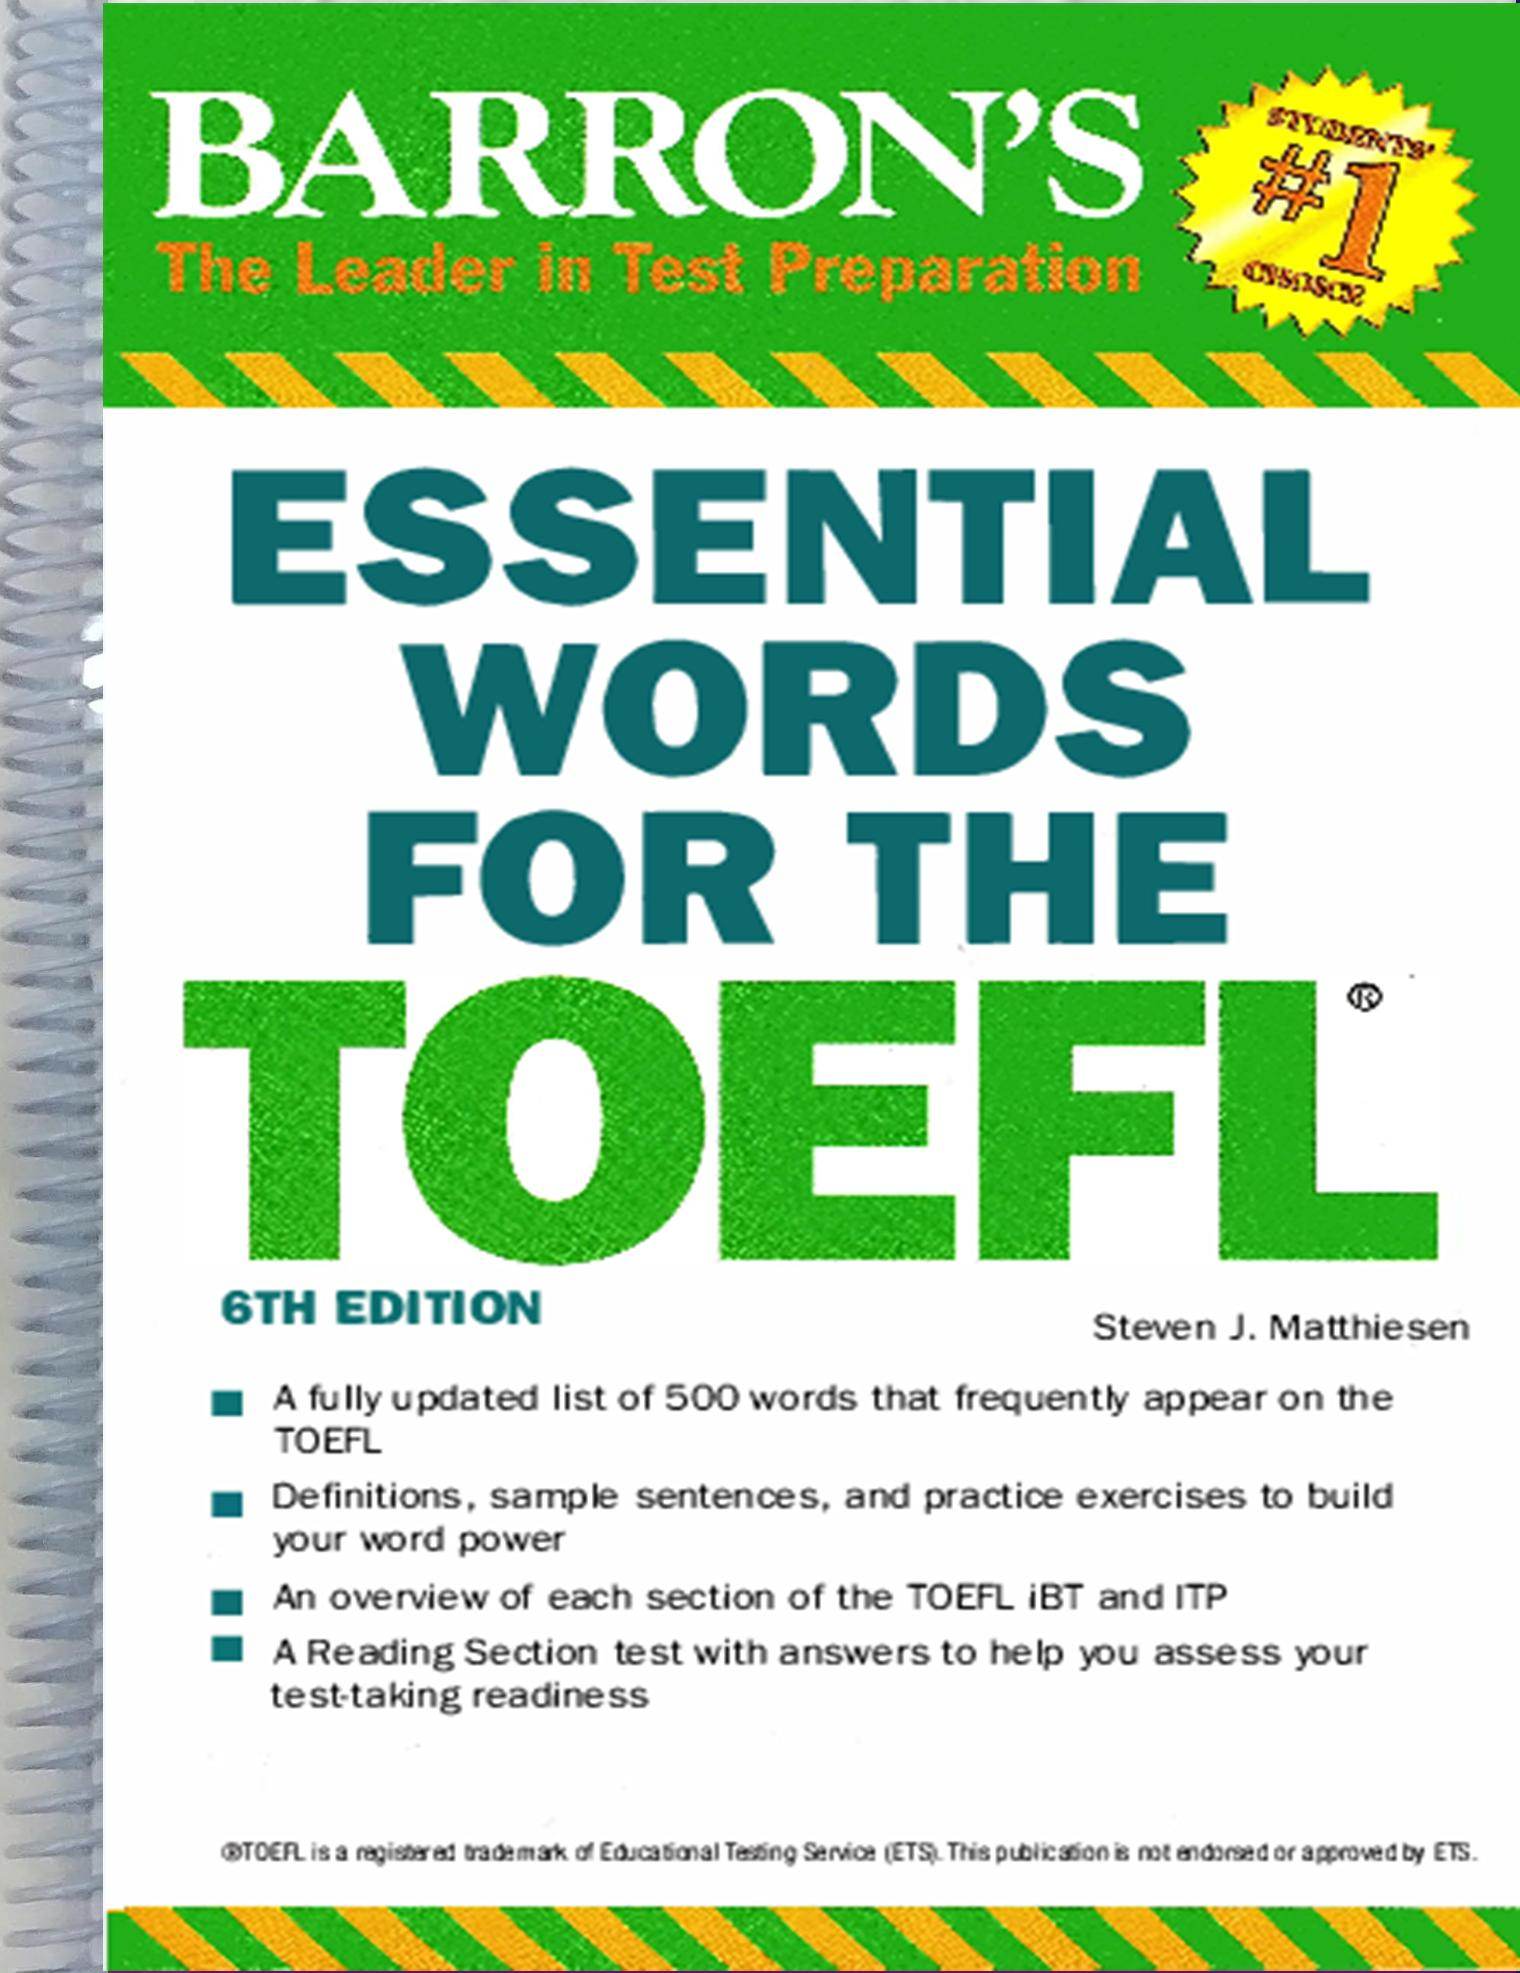 Essential Words for the TOEFL, 6th